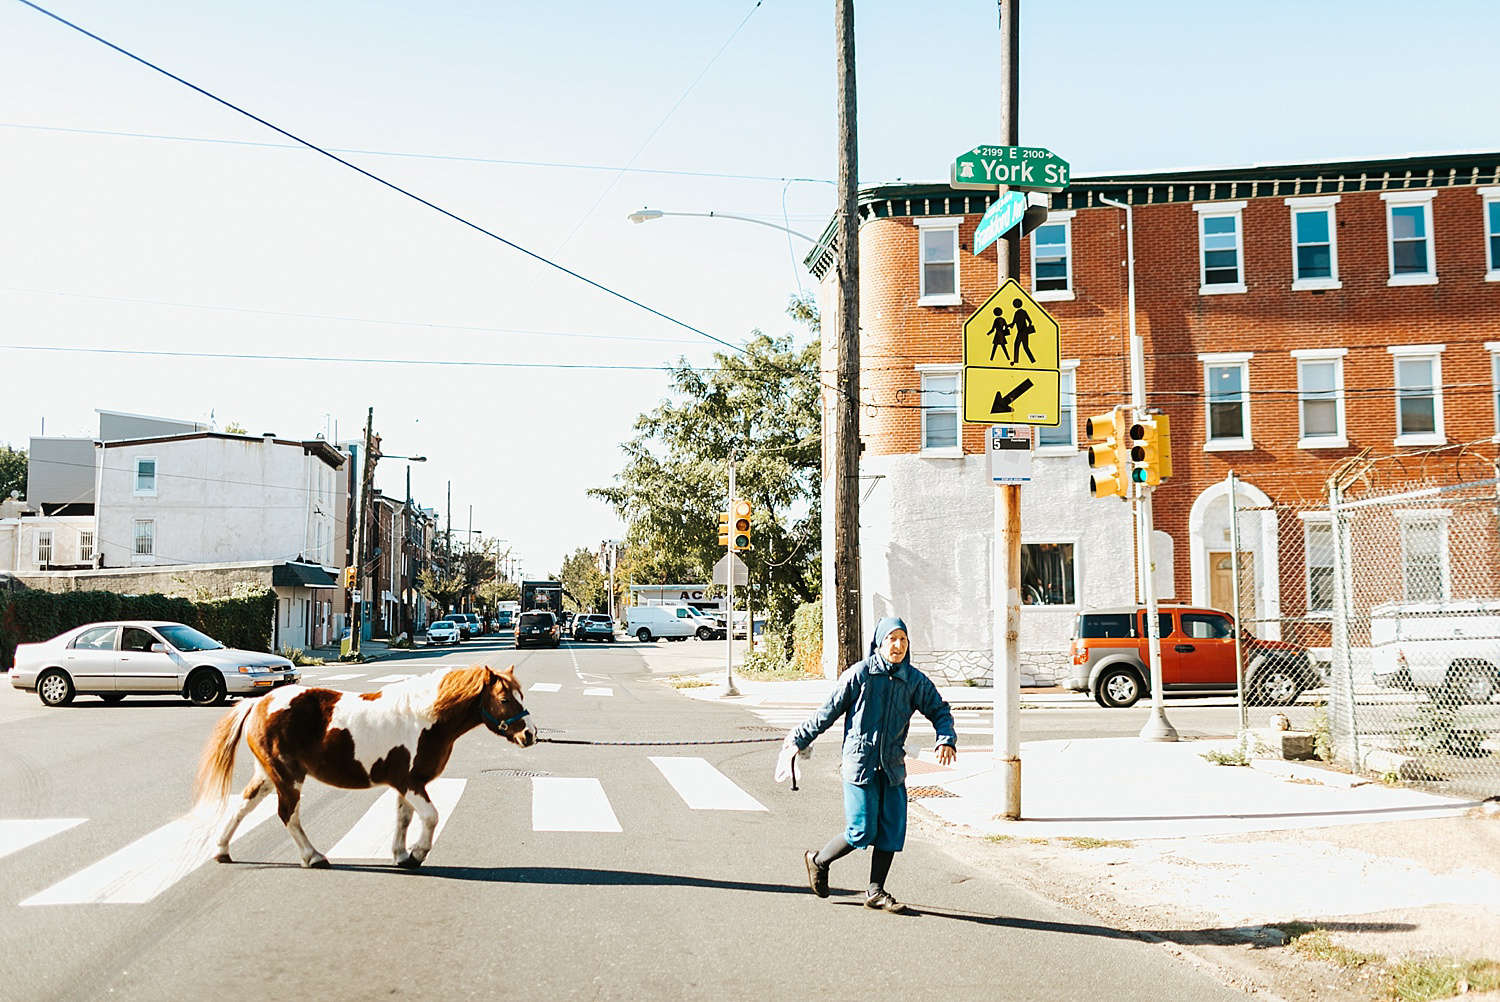 A horse getting walked across the street in fishtown, philadelphia